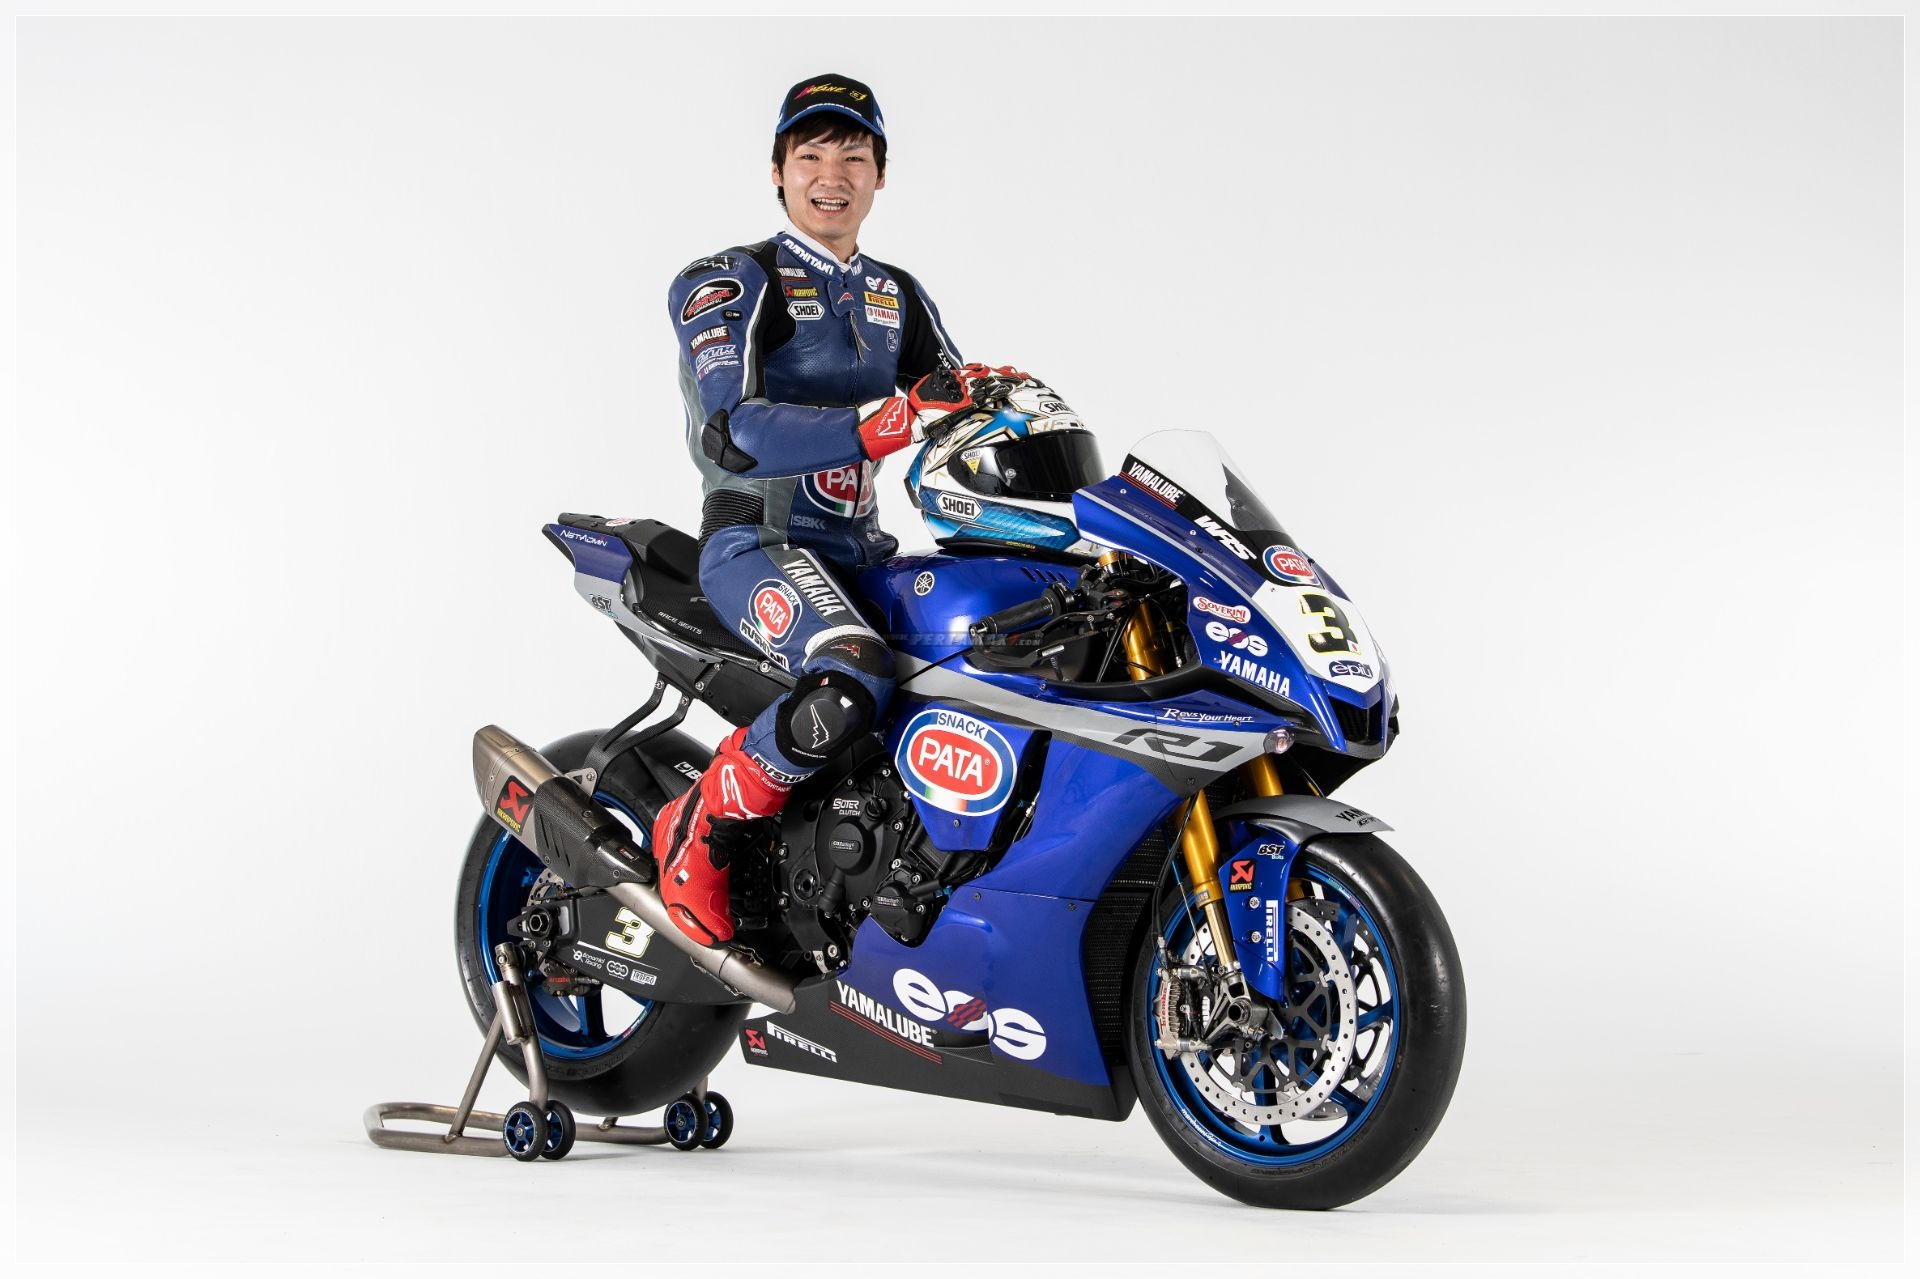 Wallpaper GRT Yamaha R1 WSBK 2021